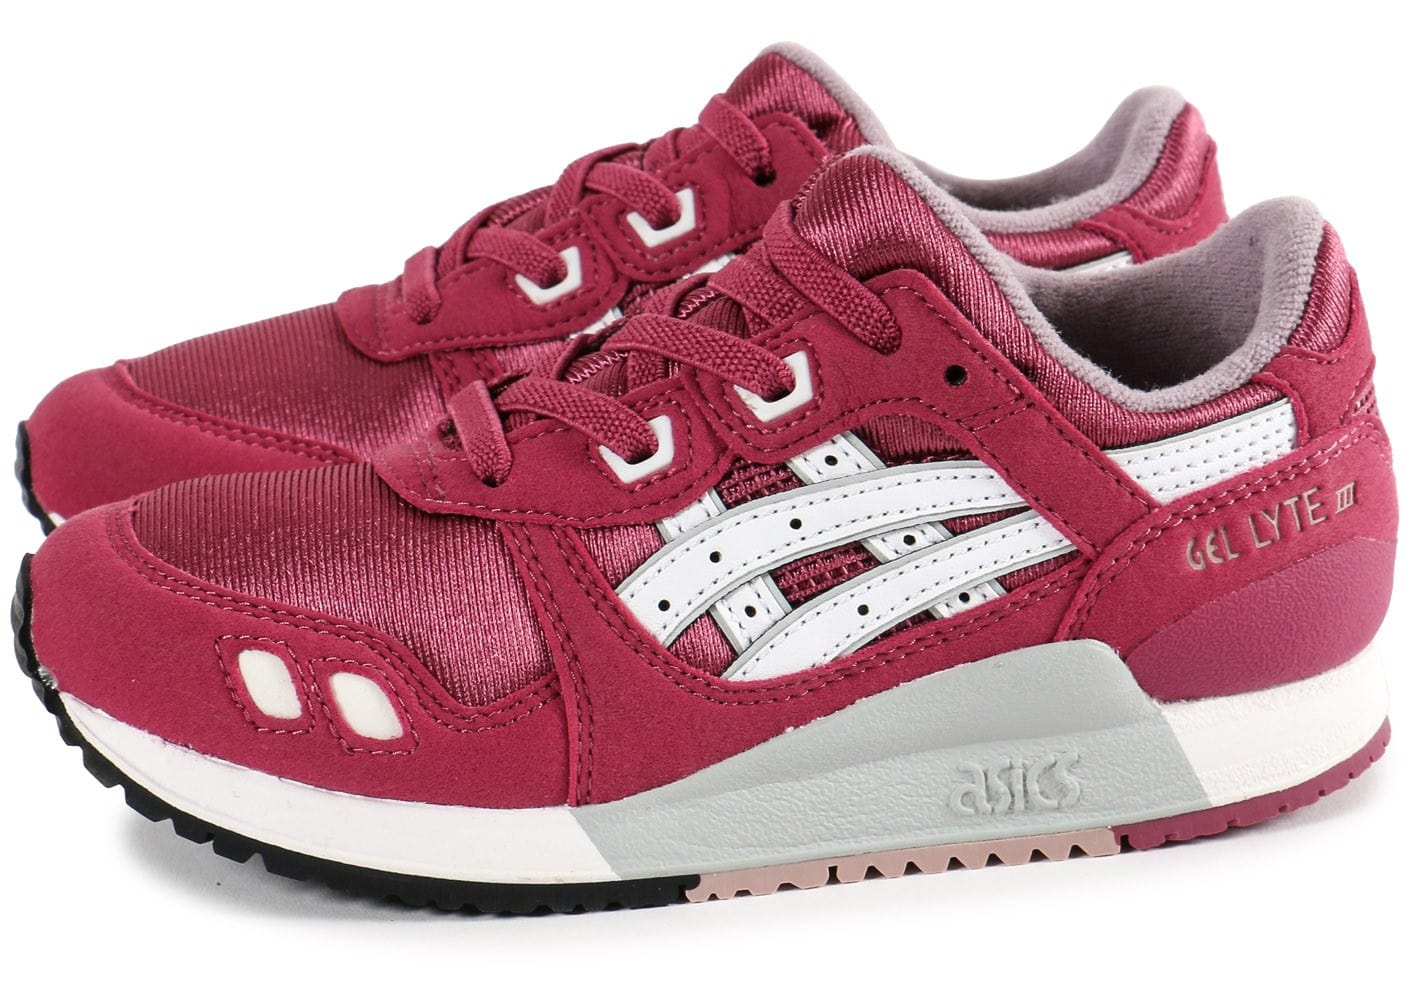 asics gel lyte 3 enfant rose chaussures chaussures chausport. Black Bedroom Furniture Sets. Home Design Ideas